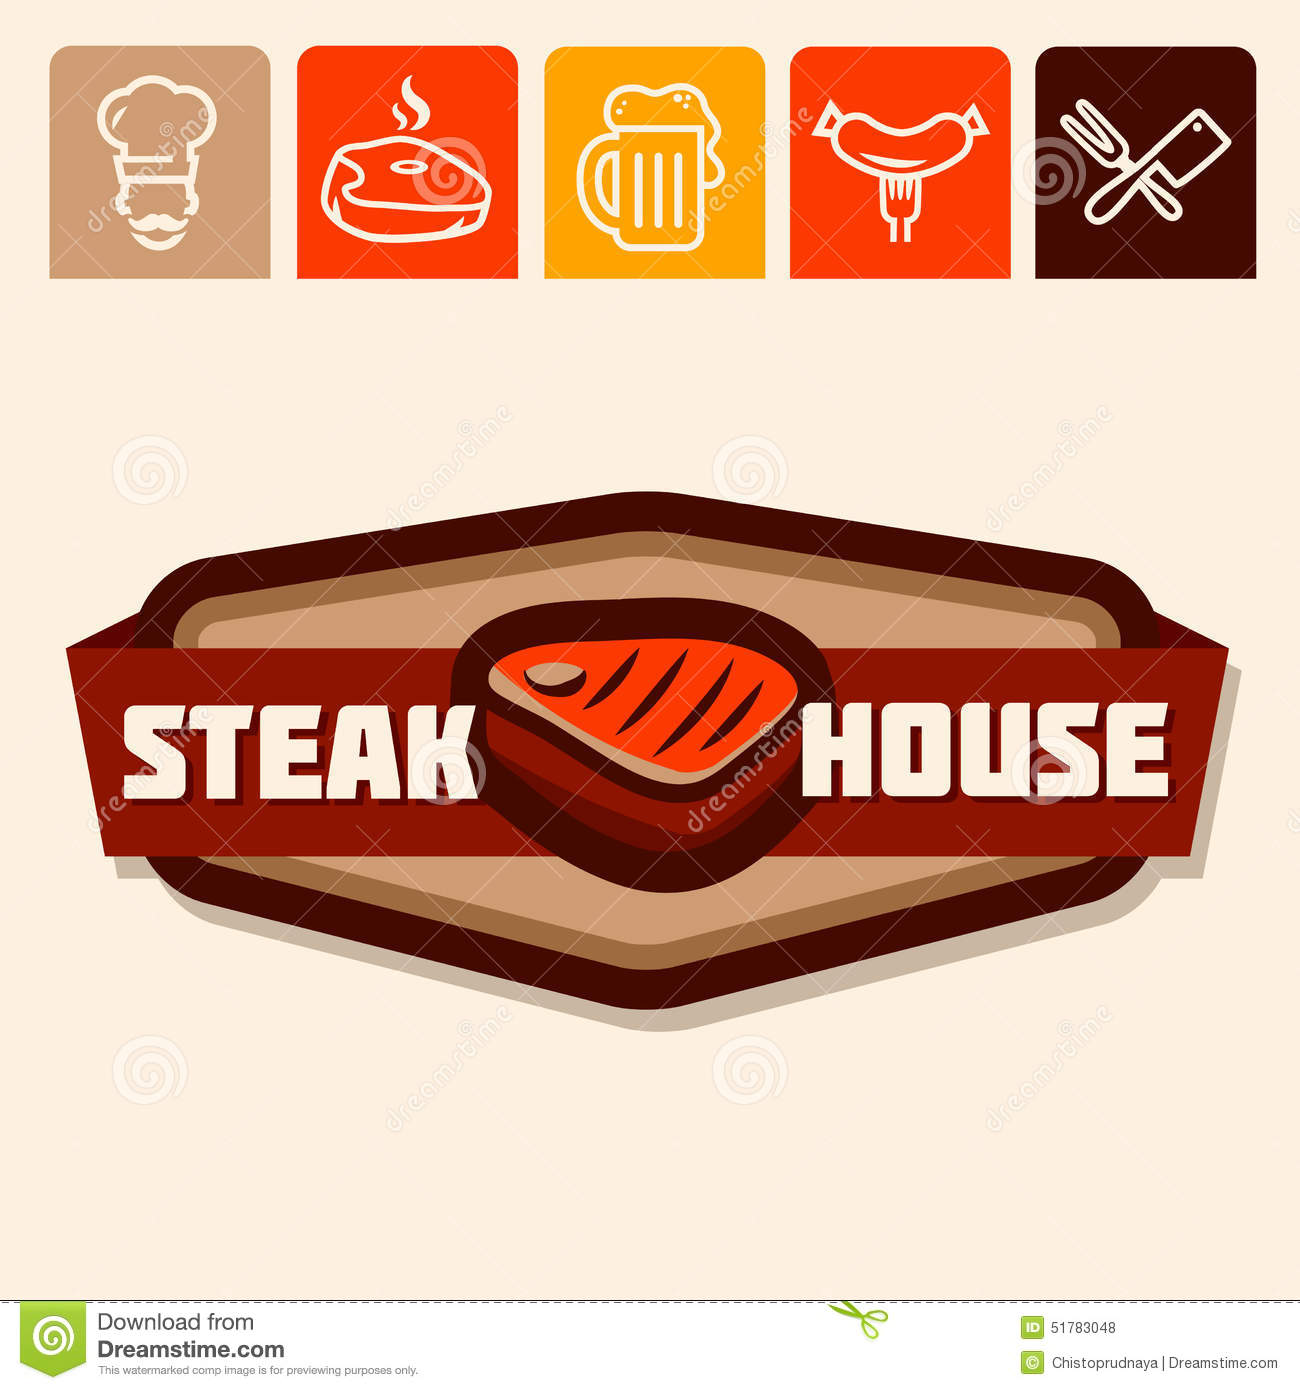 https://thumbs.dreamstime.com/z/steak-house-set-badge-label-logo-icons-design-templates-meat-store-grill-menu-51783048.jpg